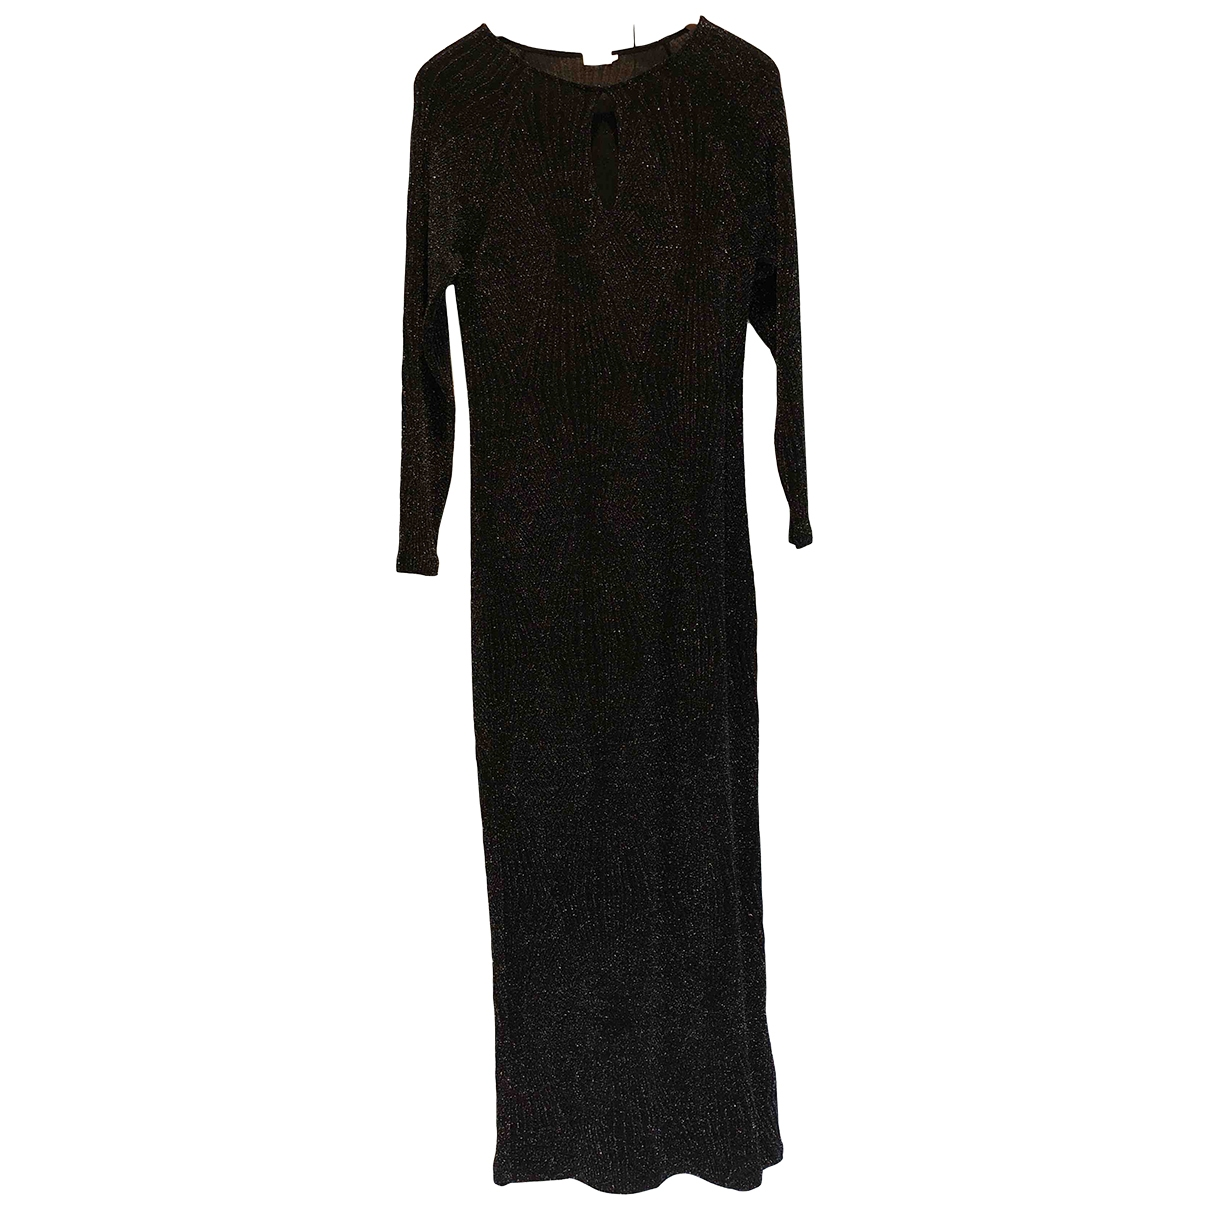 Filippa K \N Black Glitter dress for Women S International